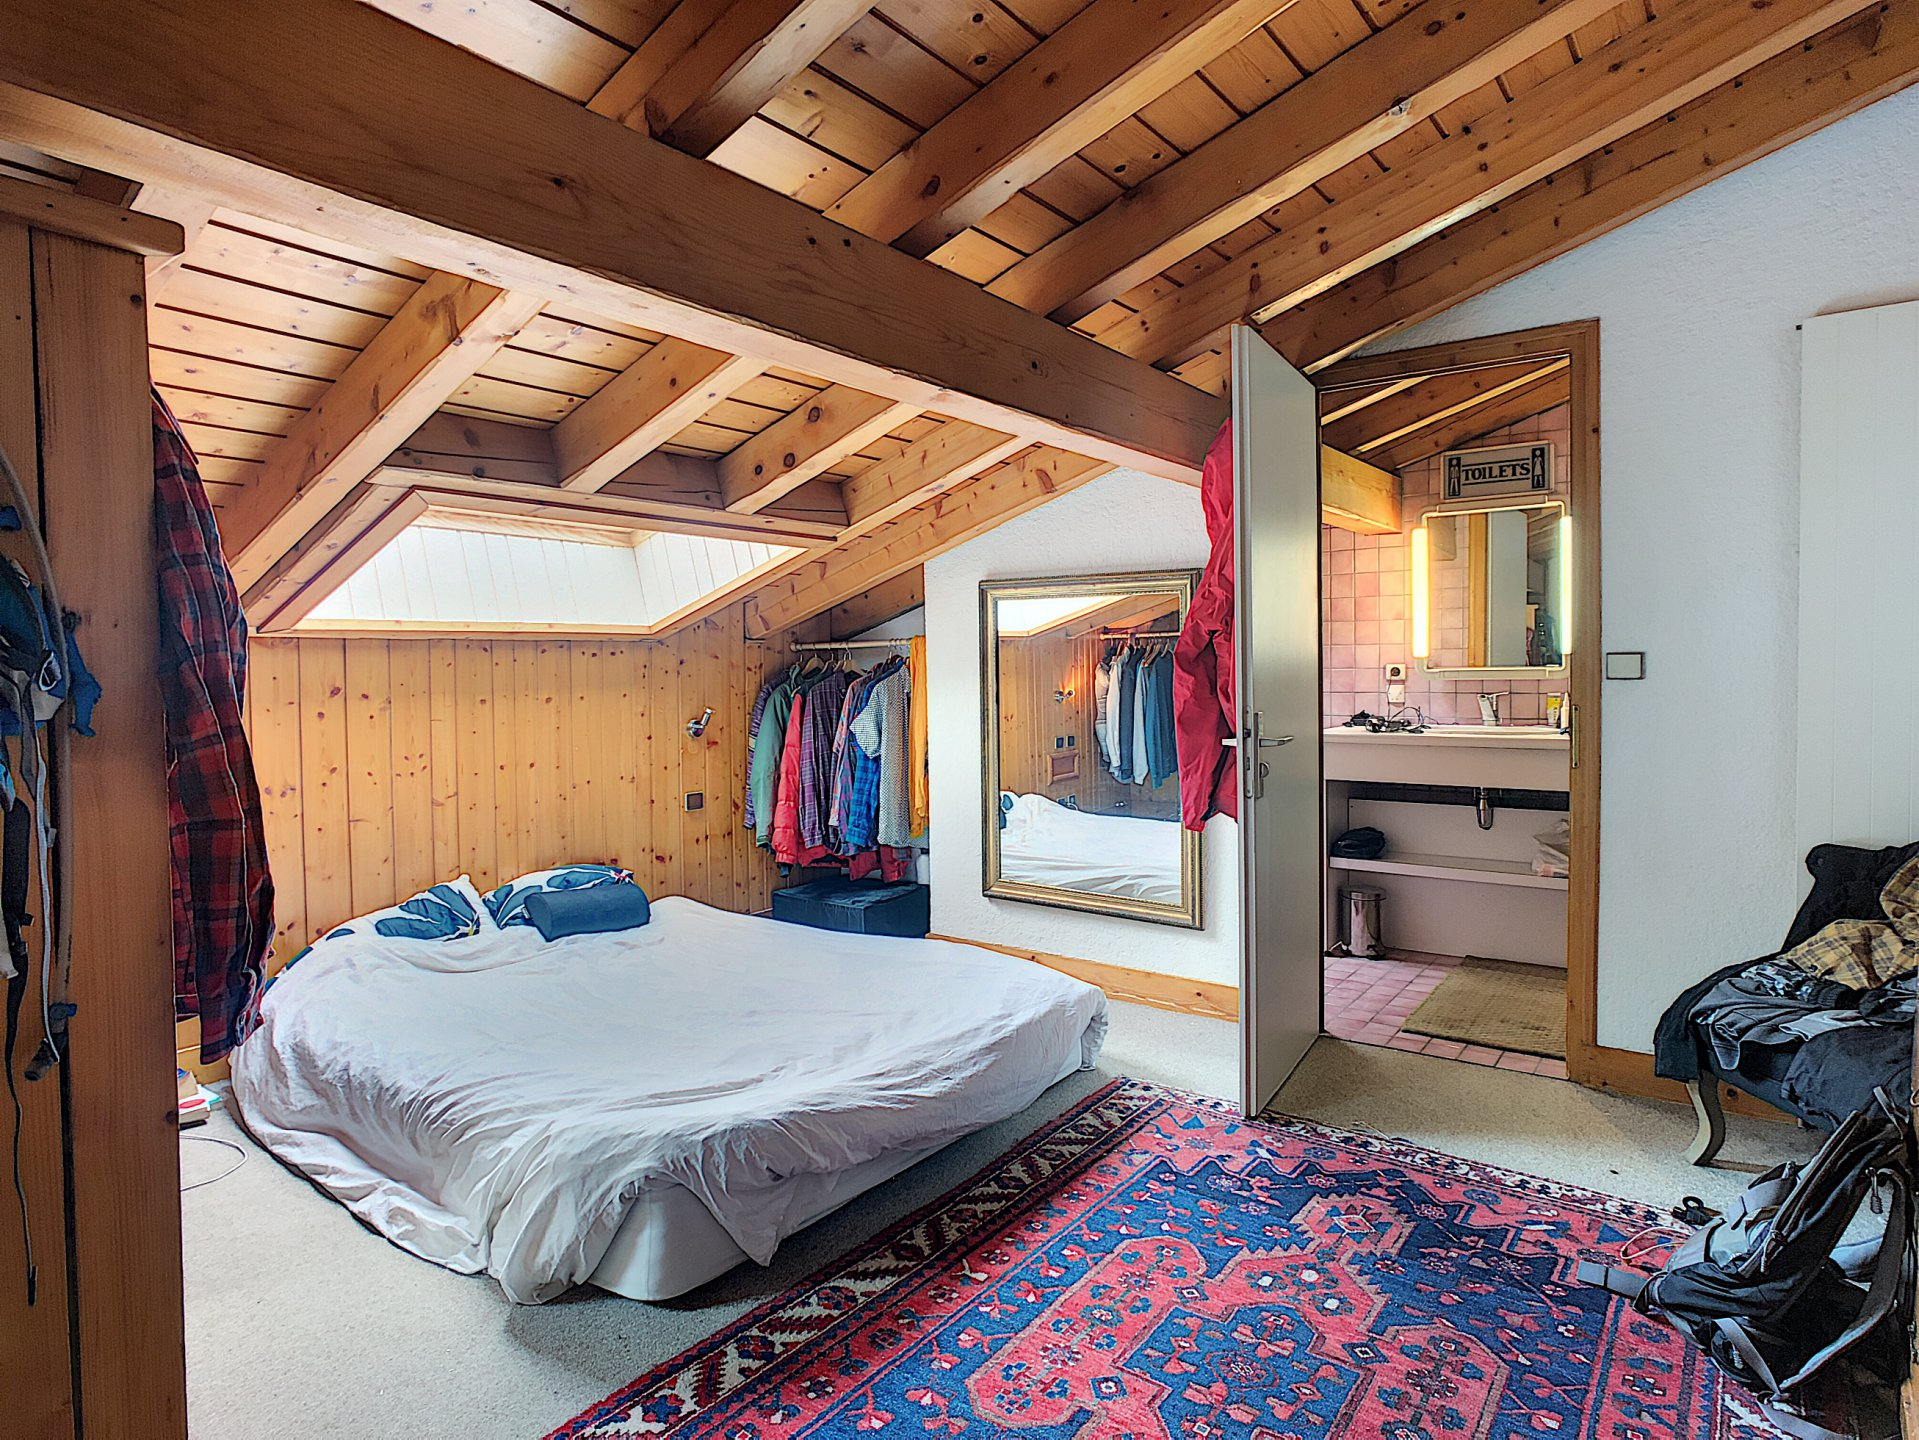 2 beds apartment under the roof